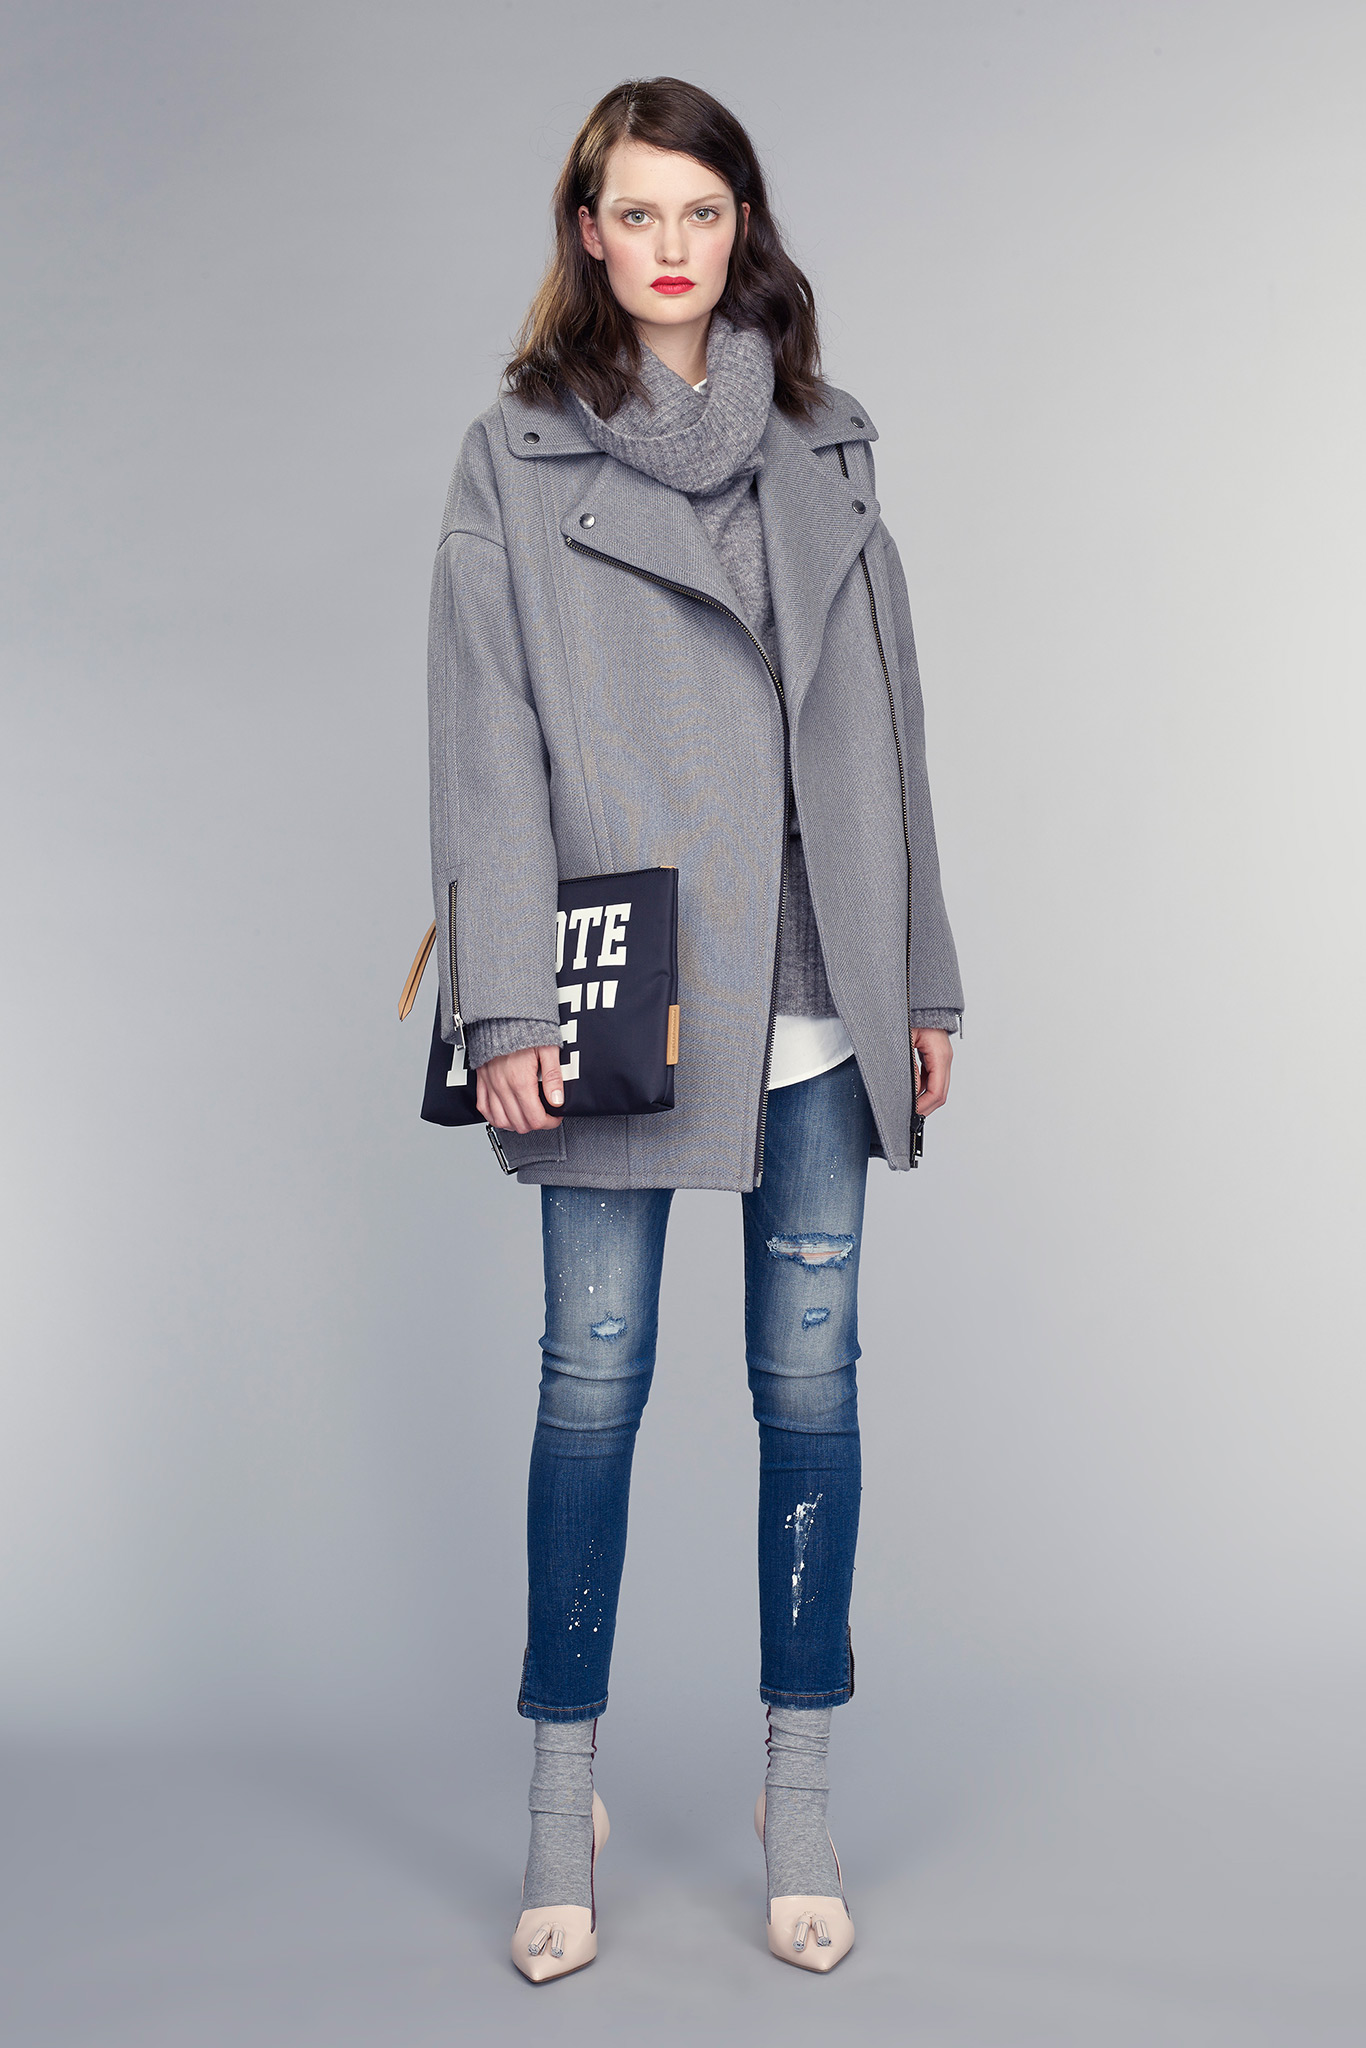 Banana-Republic-Fall-Winter-2015-2016-Womens-Collection-7